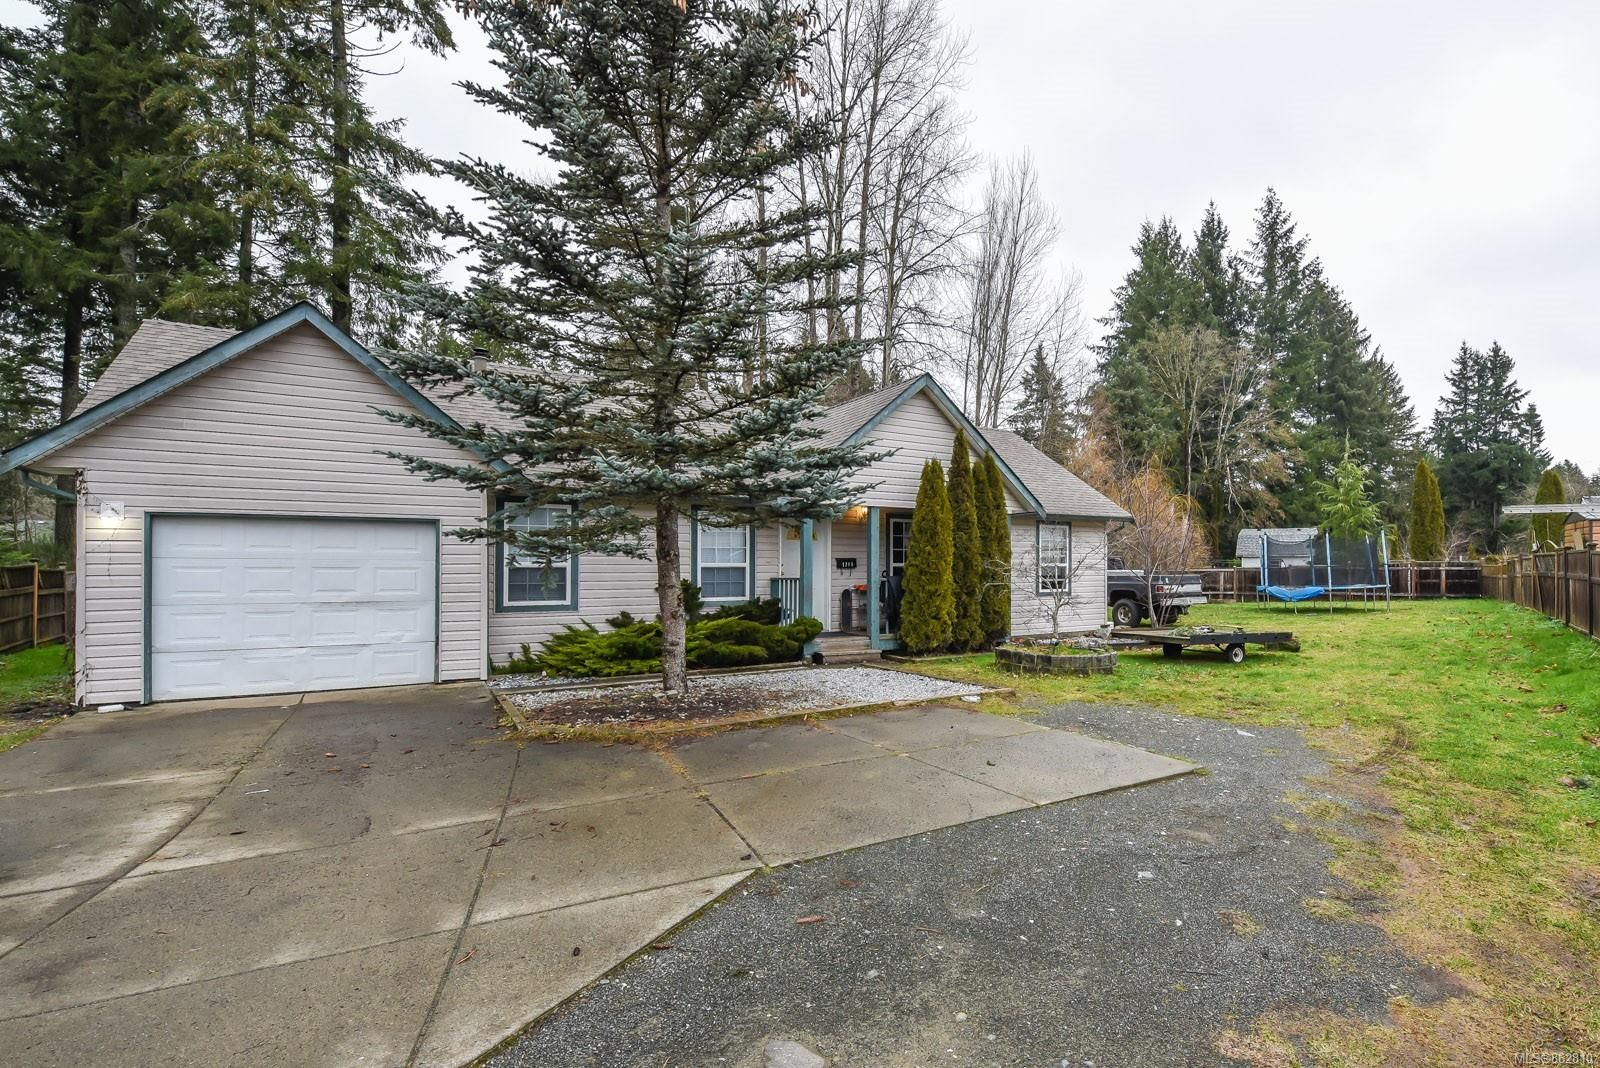 Main Photo: 1749 1st St in : CV Courtenay City House for sale (Comox Valley)  : MLS®# 862810